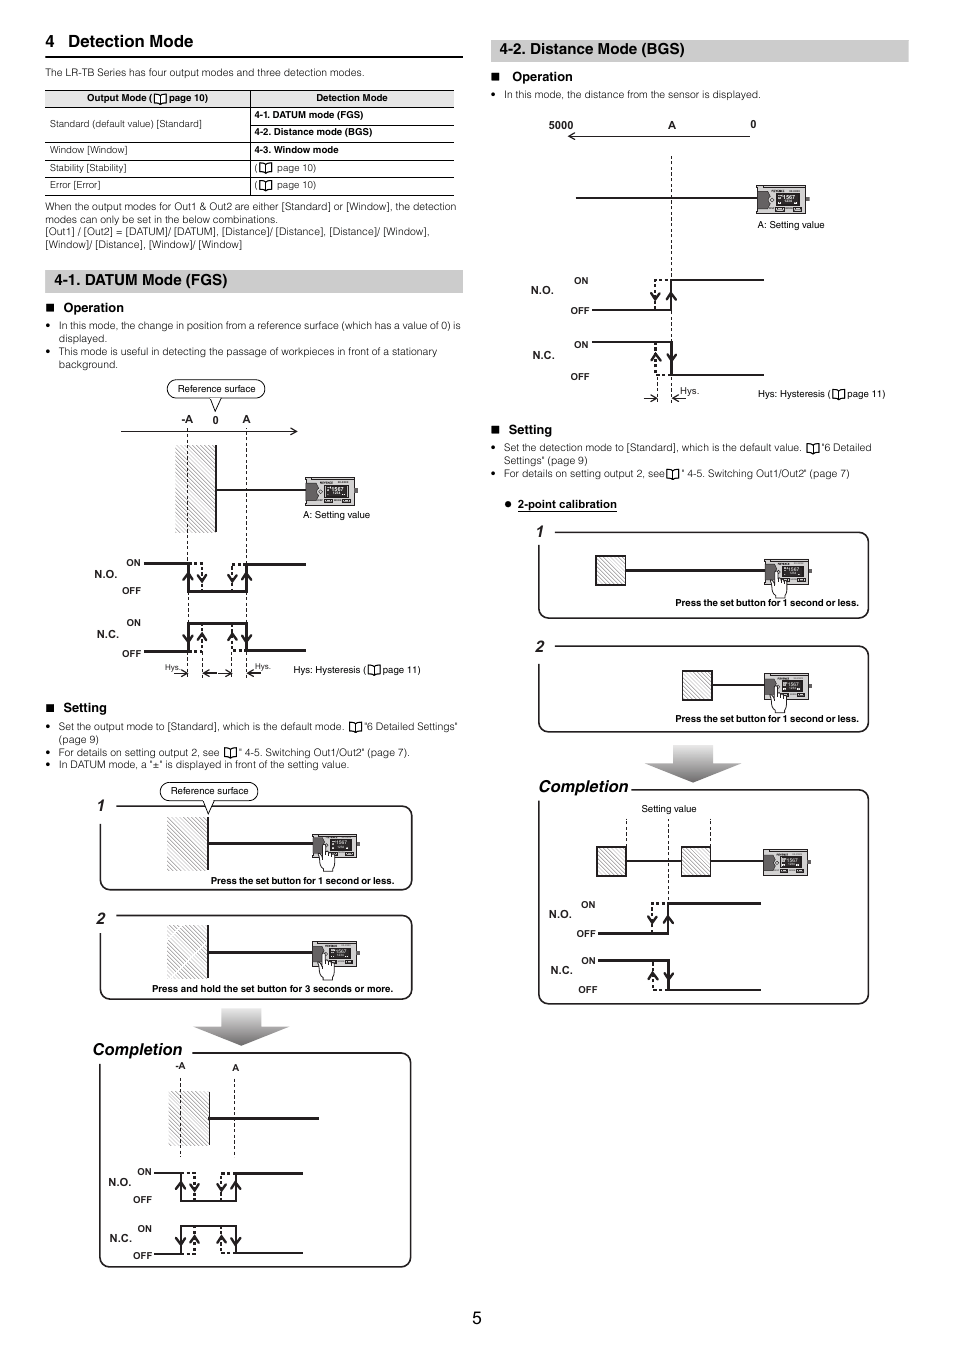 hight resolution of 1 datum mode fgs operation setting keyence lr tb5000 series user manual page 5 12